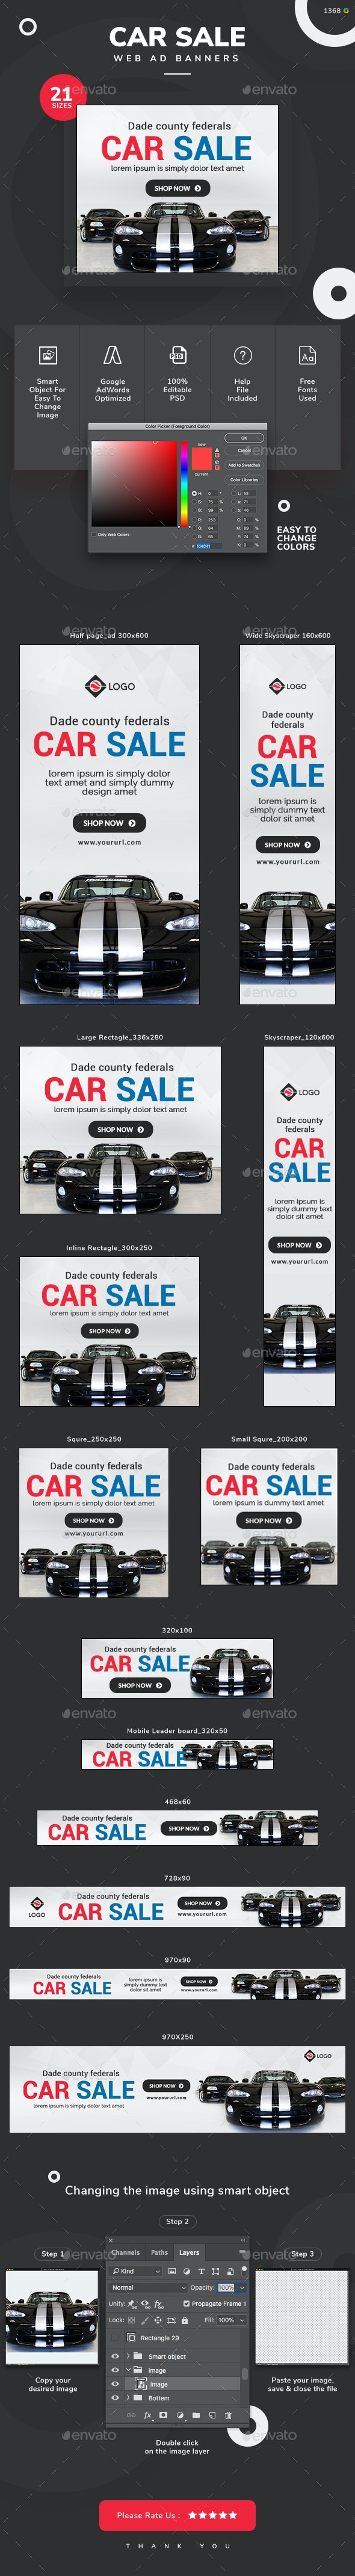 Car Sale Banners - Updated! - Banners & Ads Web Elements